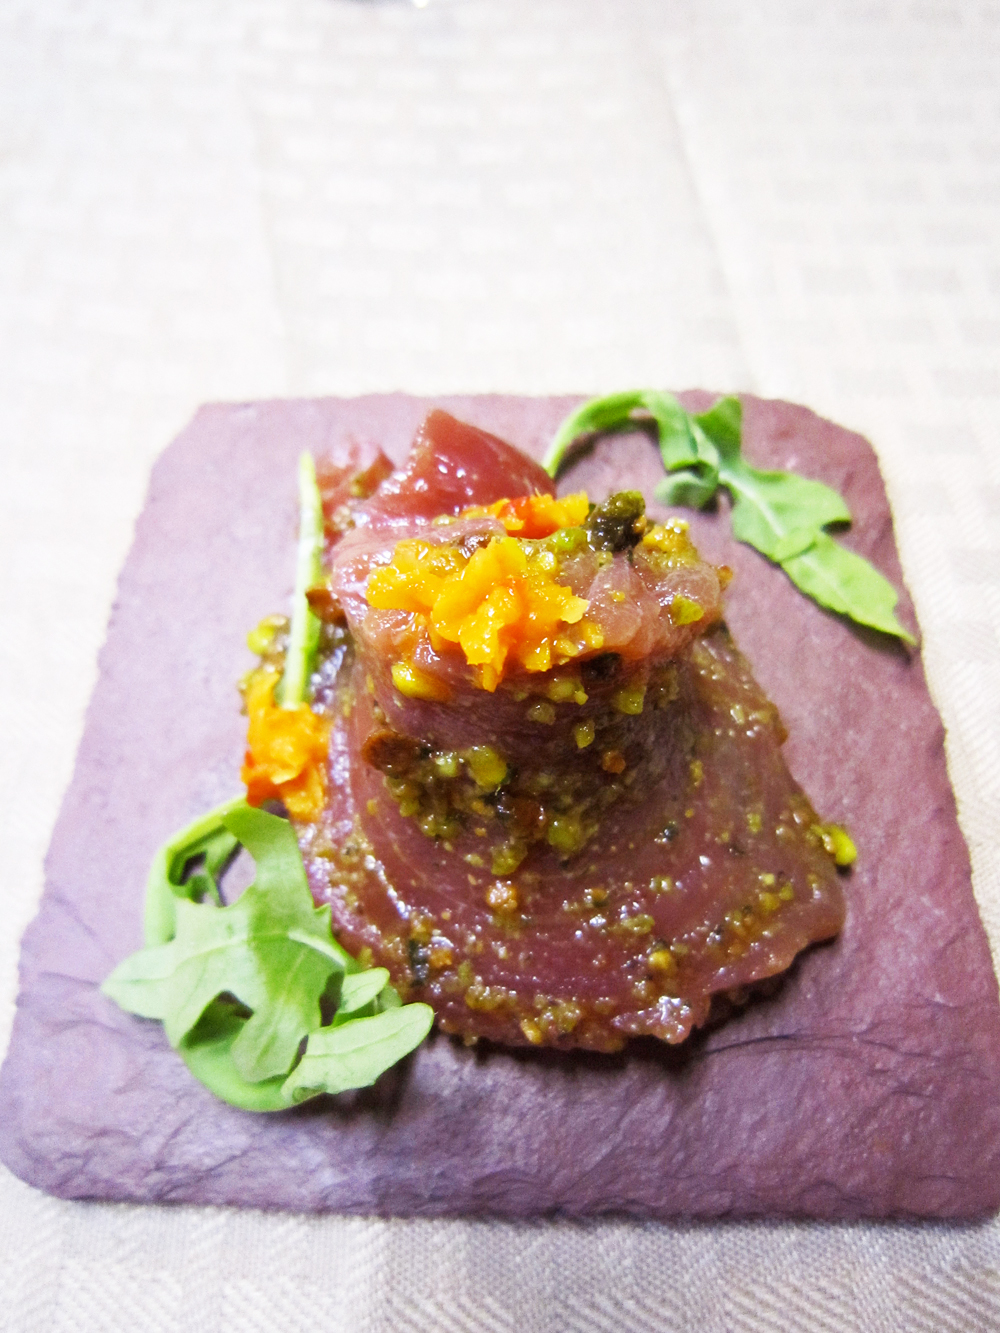 This tuna loin with mint and pistachio pesto and citrus zest fermented with chiles was a course at the kosher pop-up. Photo: Alix Wall